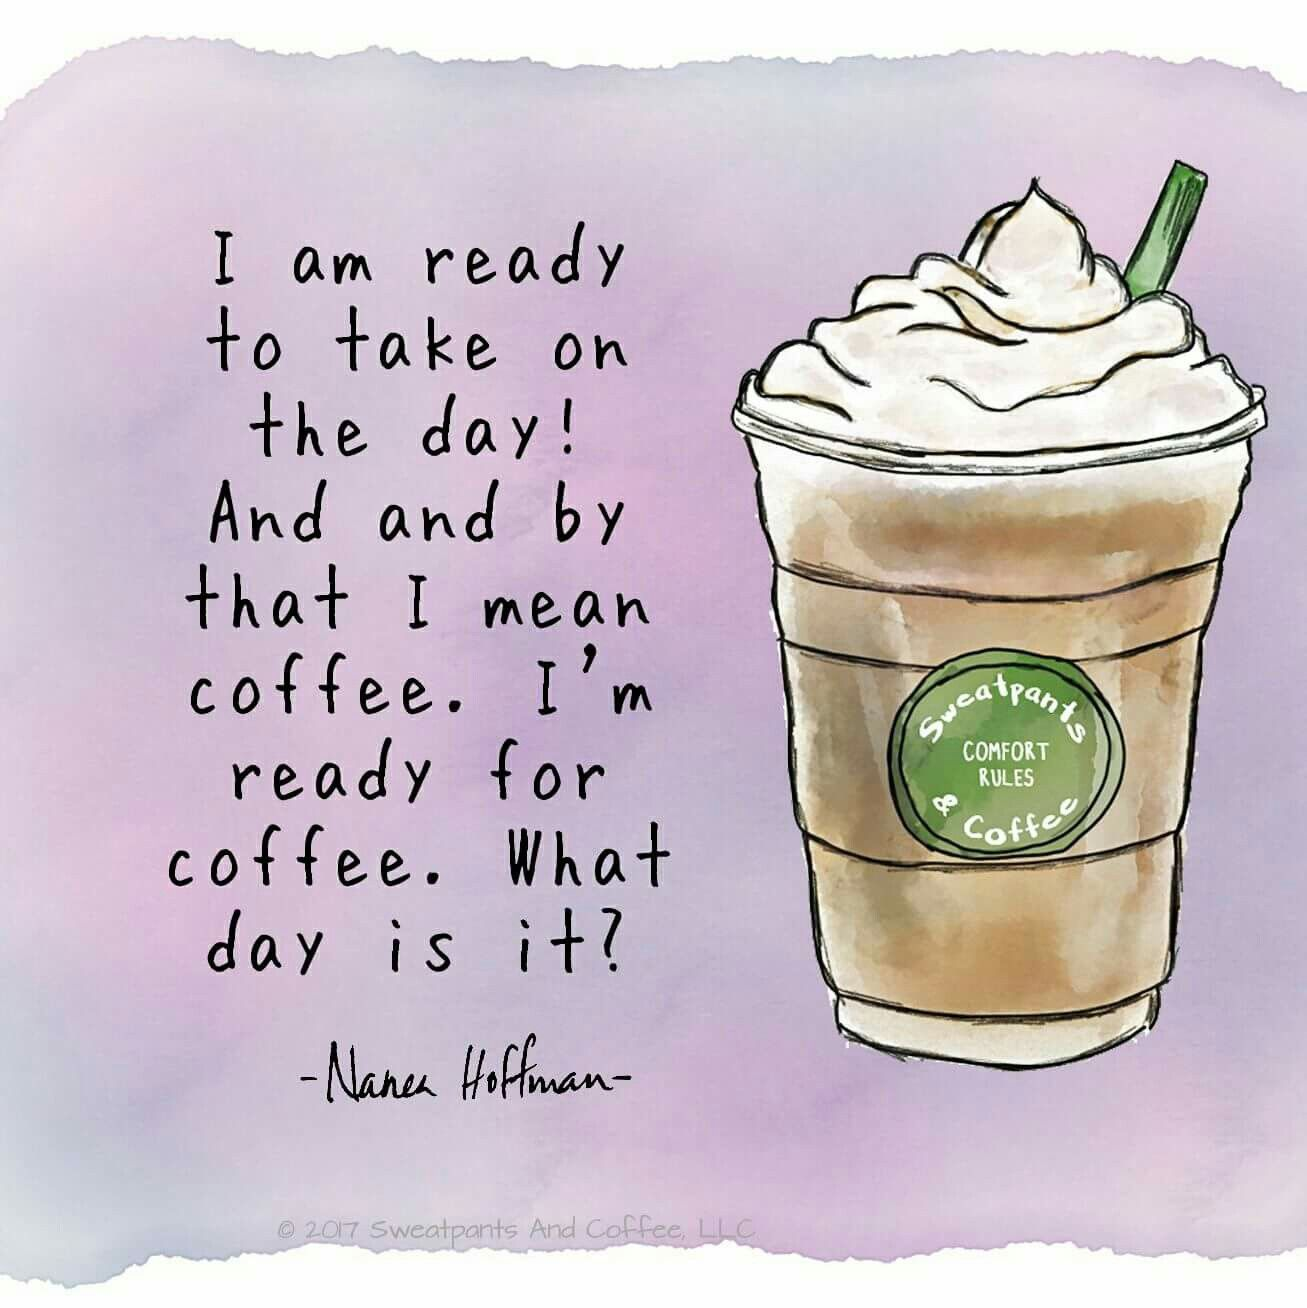 Pin by Sara Torres on Coffee Addict ) Coffee obsession